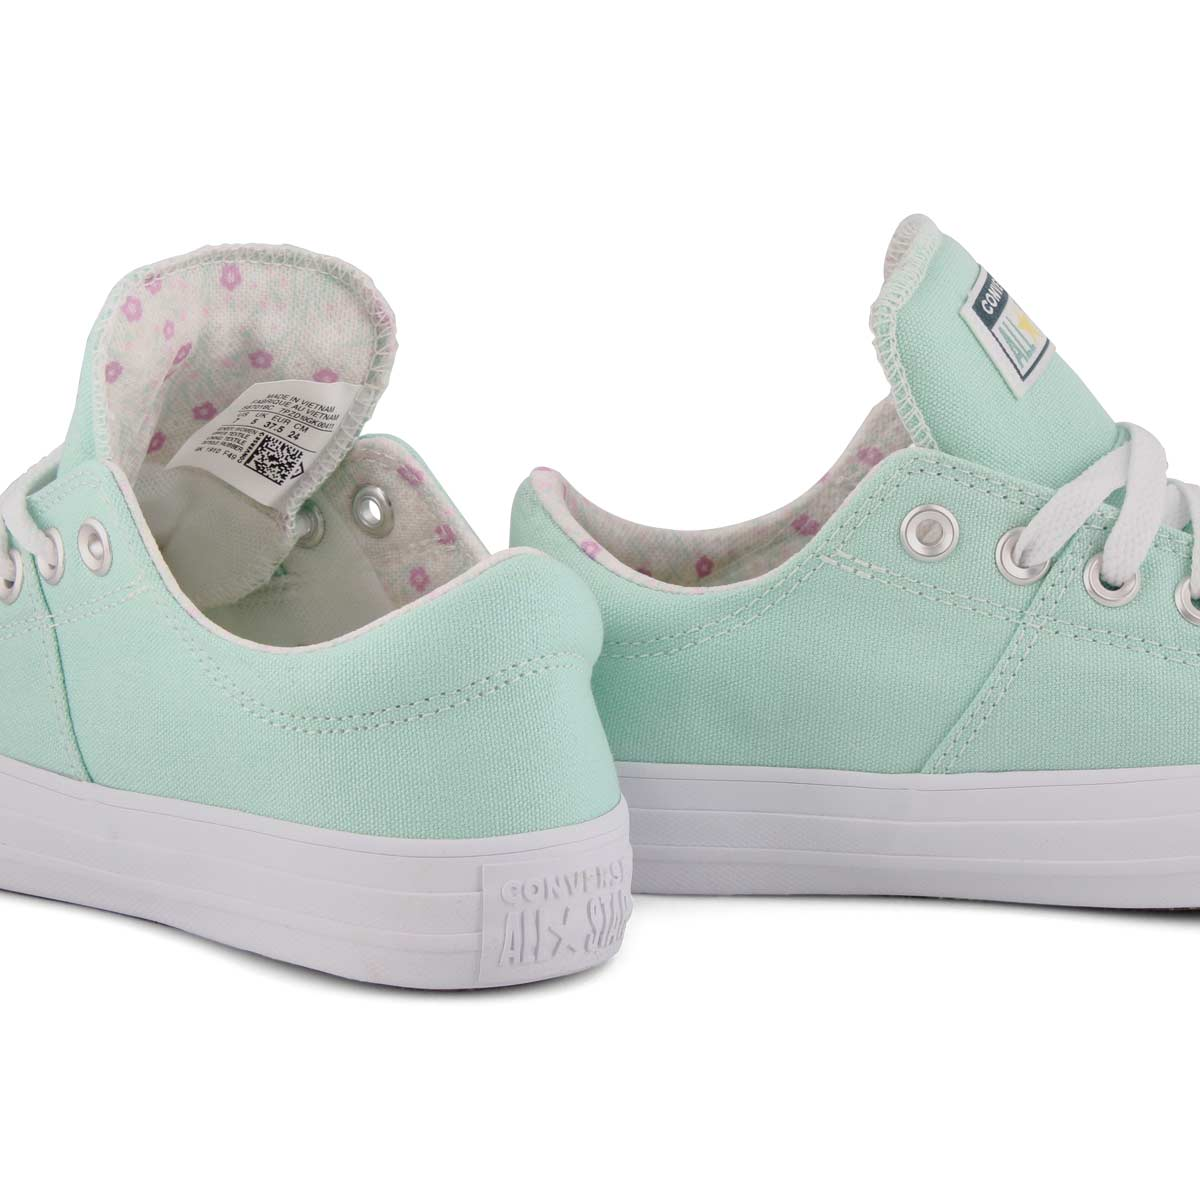 Lds CTAS Madison Ditsy Floral mint snkr